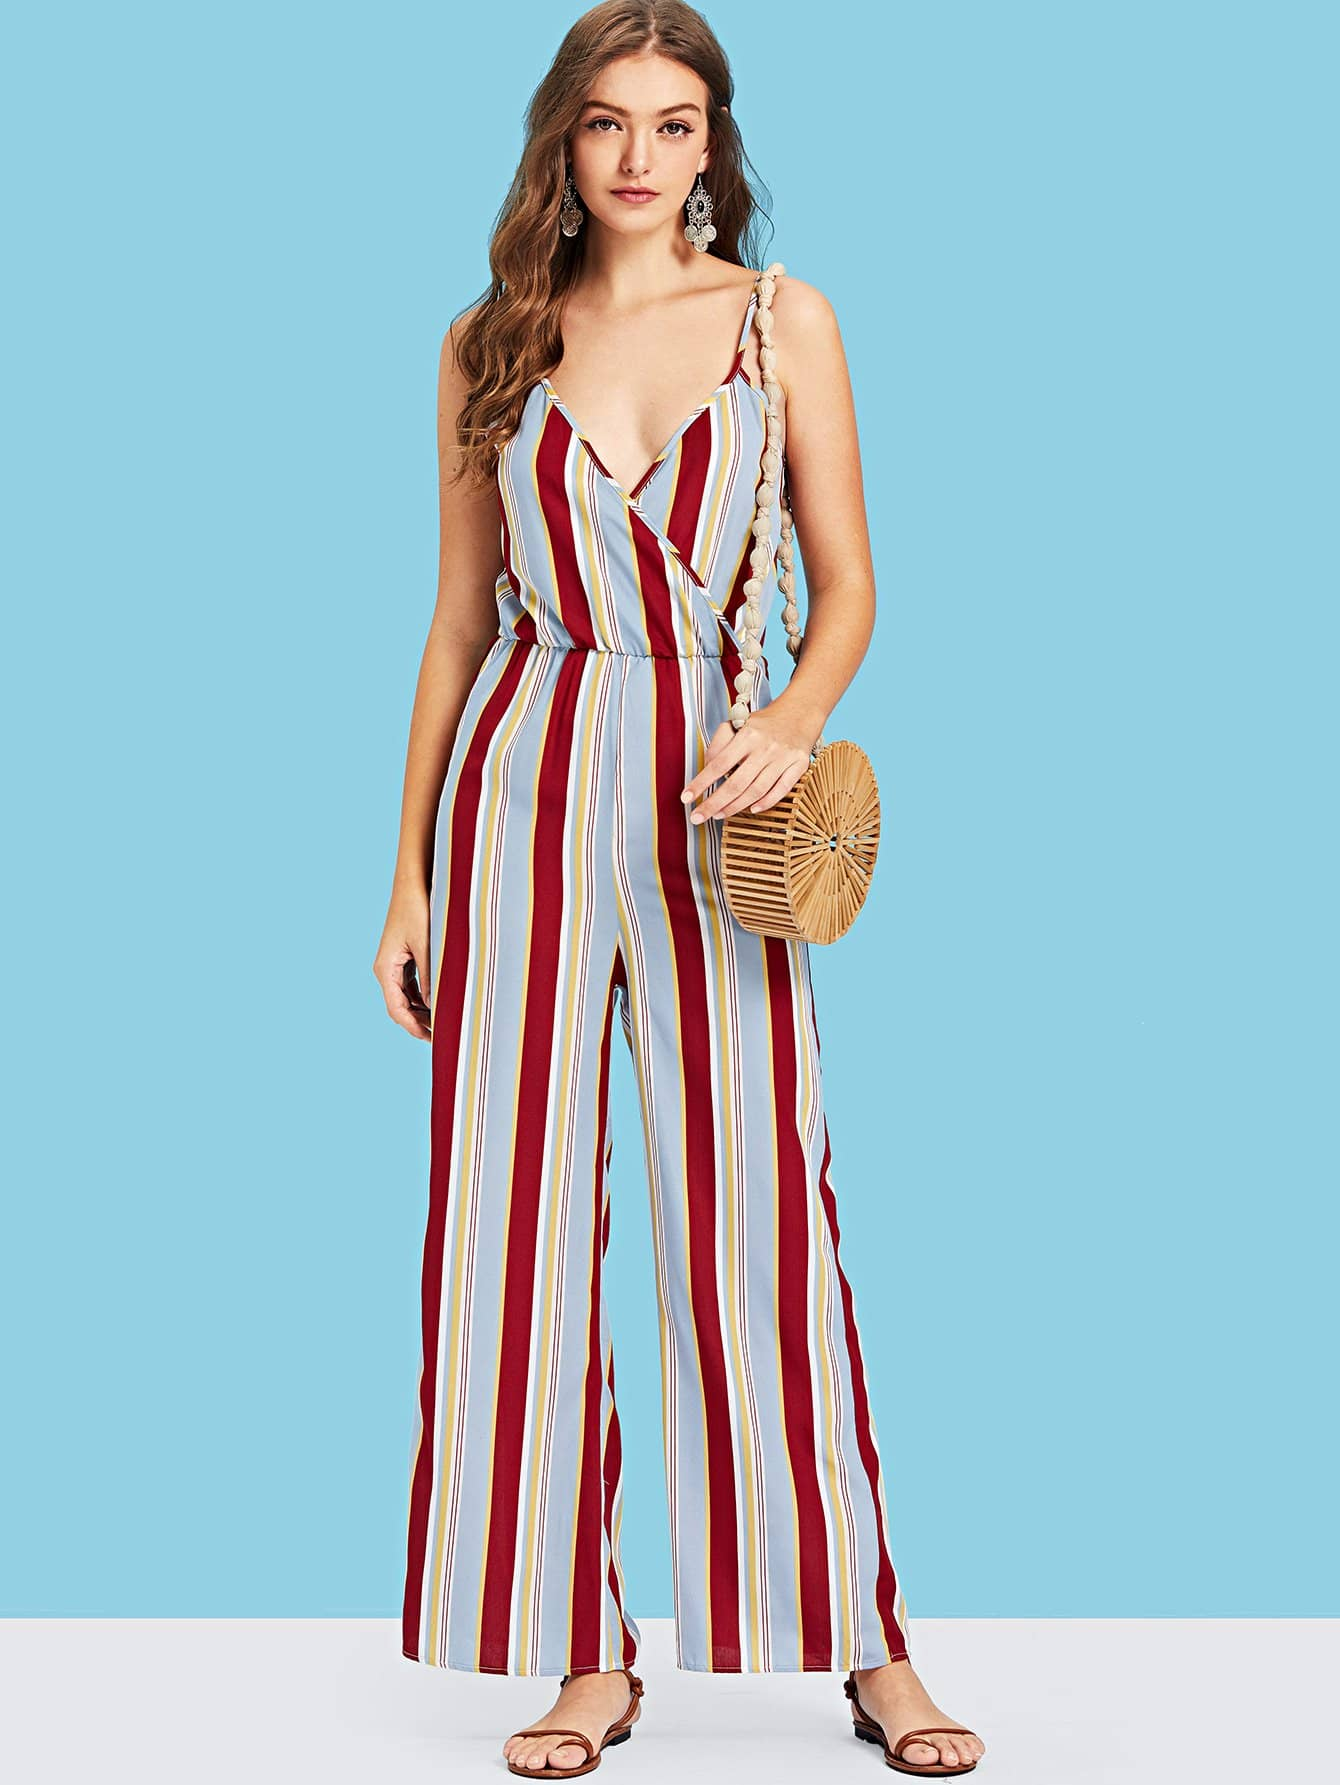 Surplice Neck Striped Cami Jumpsuit surplice neckline self tie cami jumpsuit